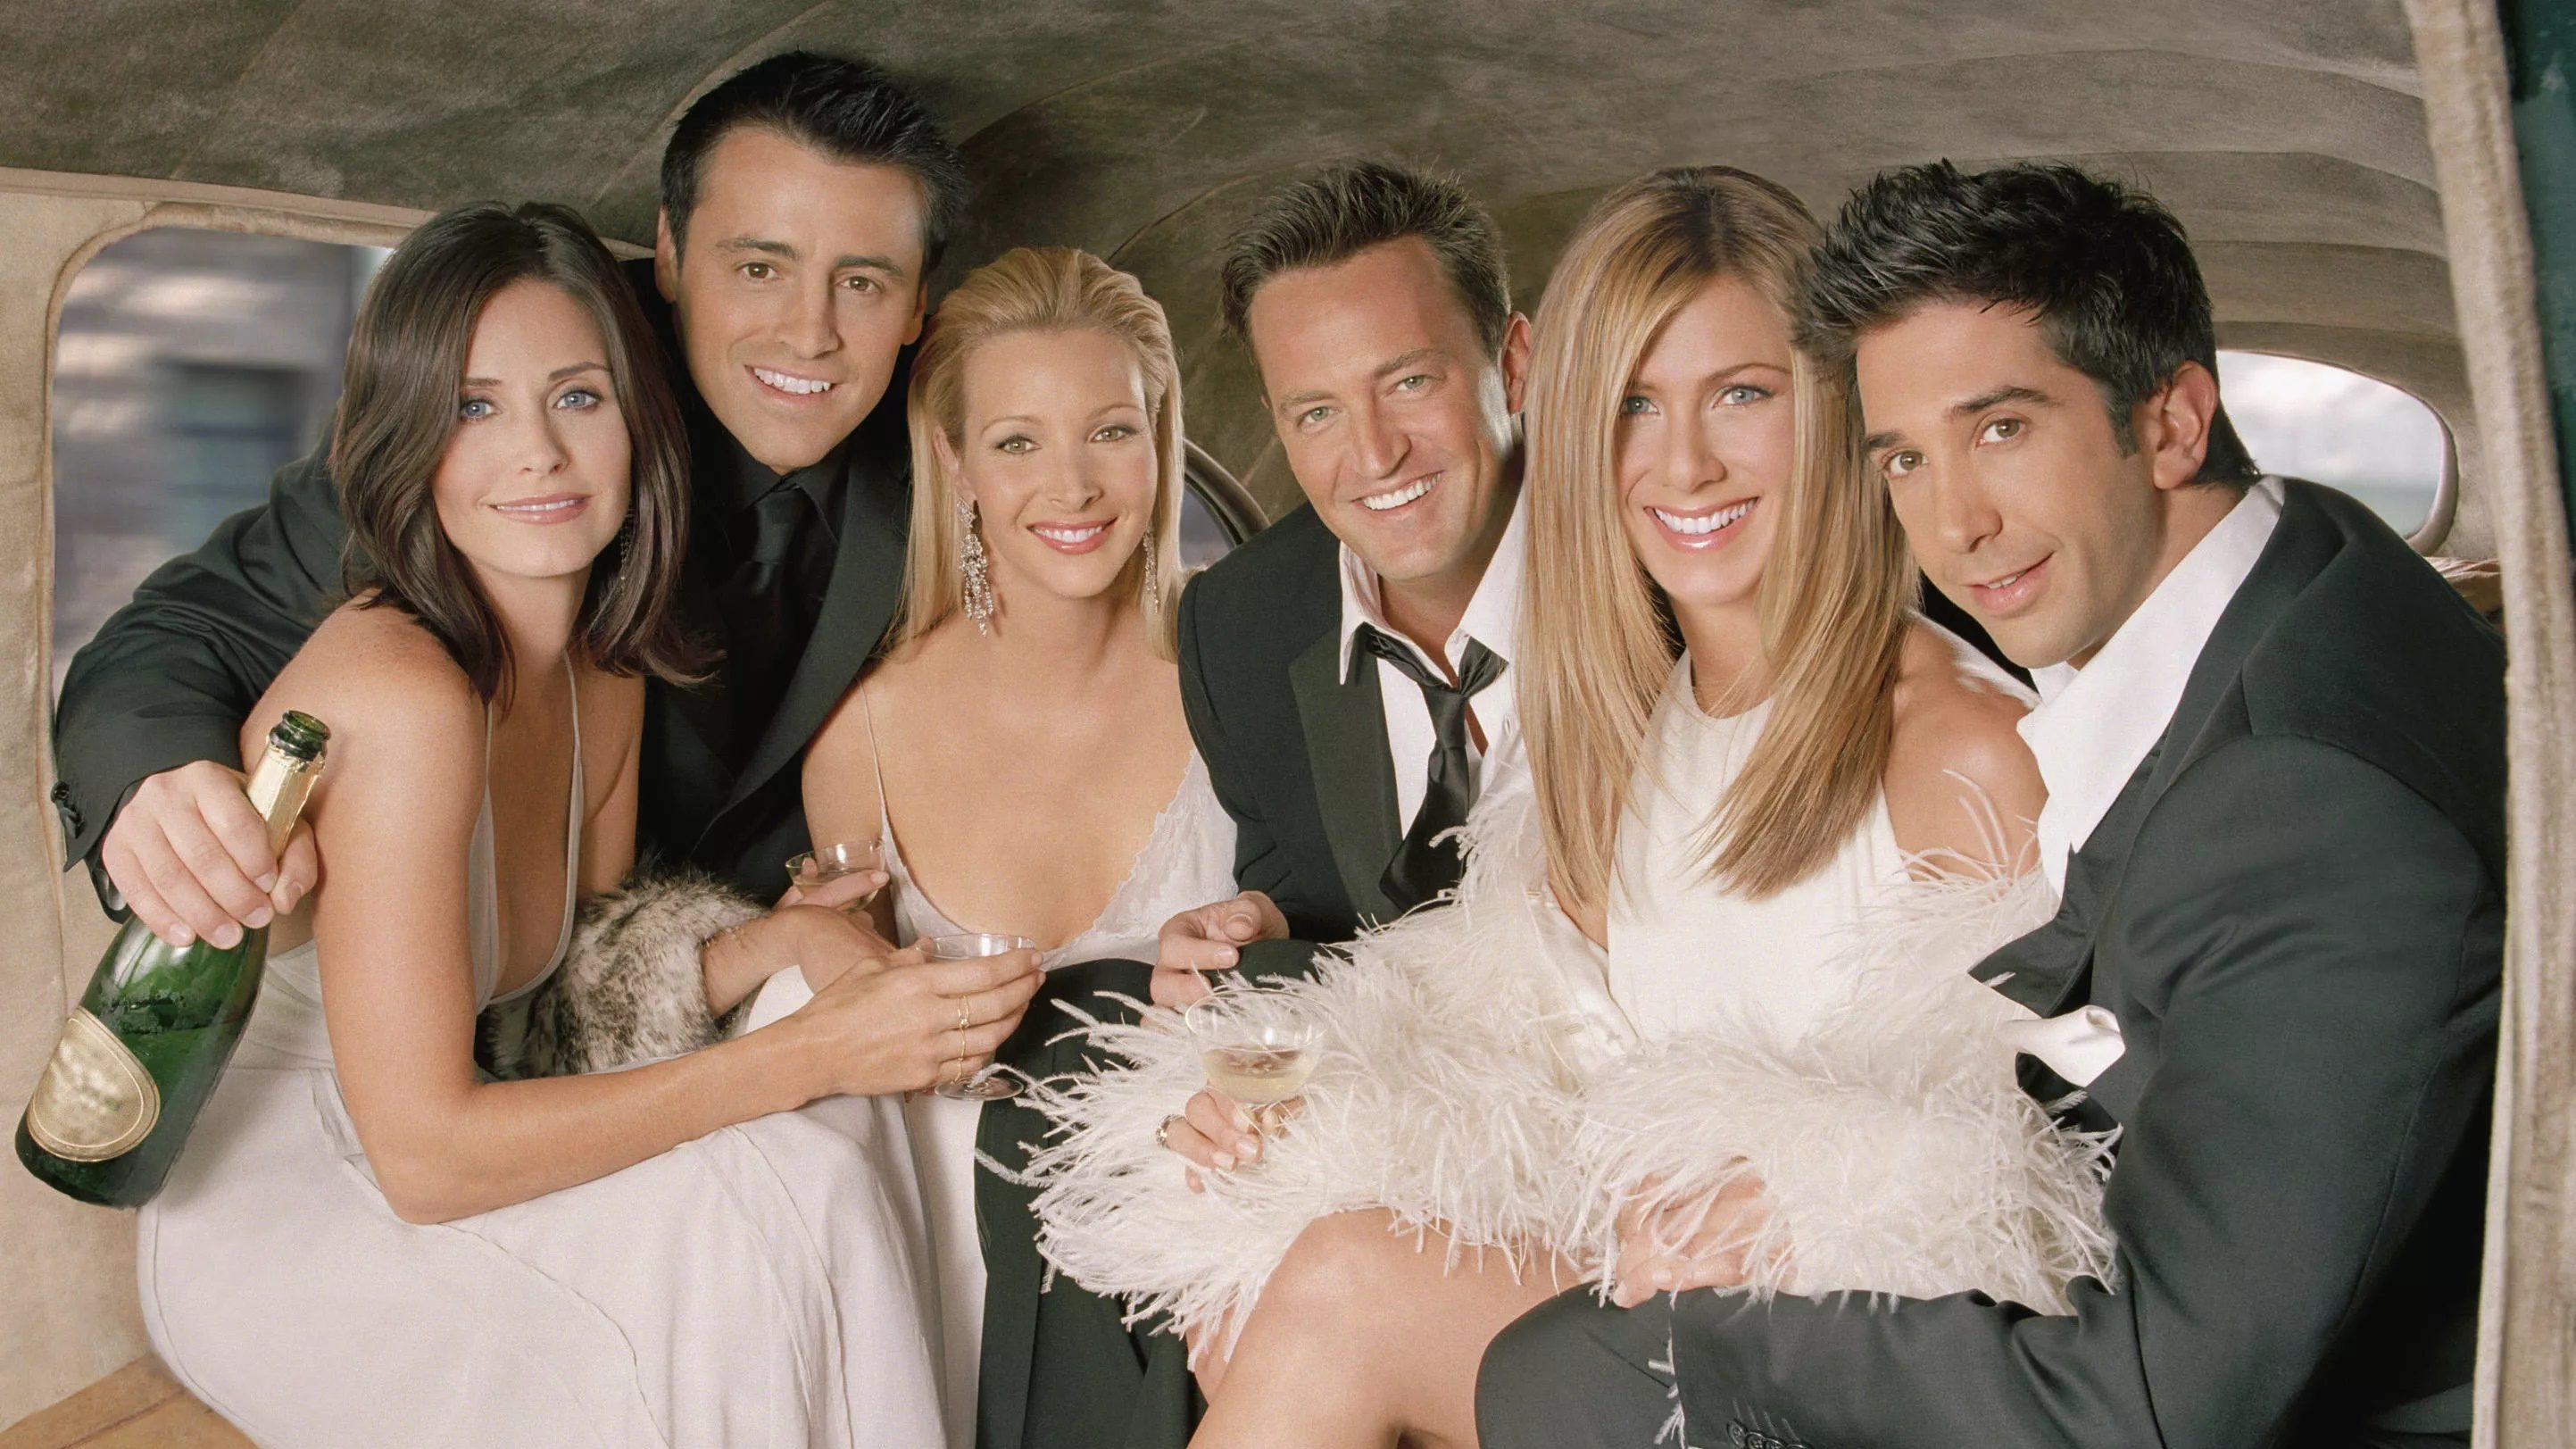 Friends Reunion Special on HBO Max might get Canceled, Stars are asking Too much Money